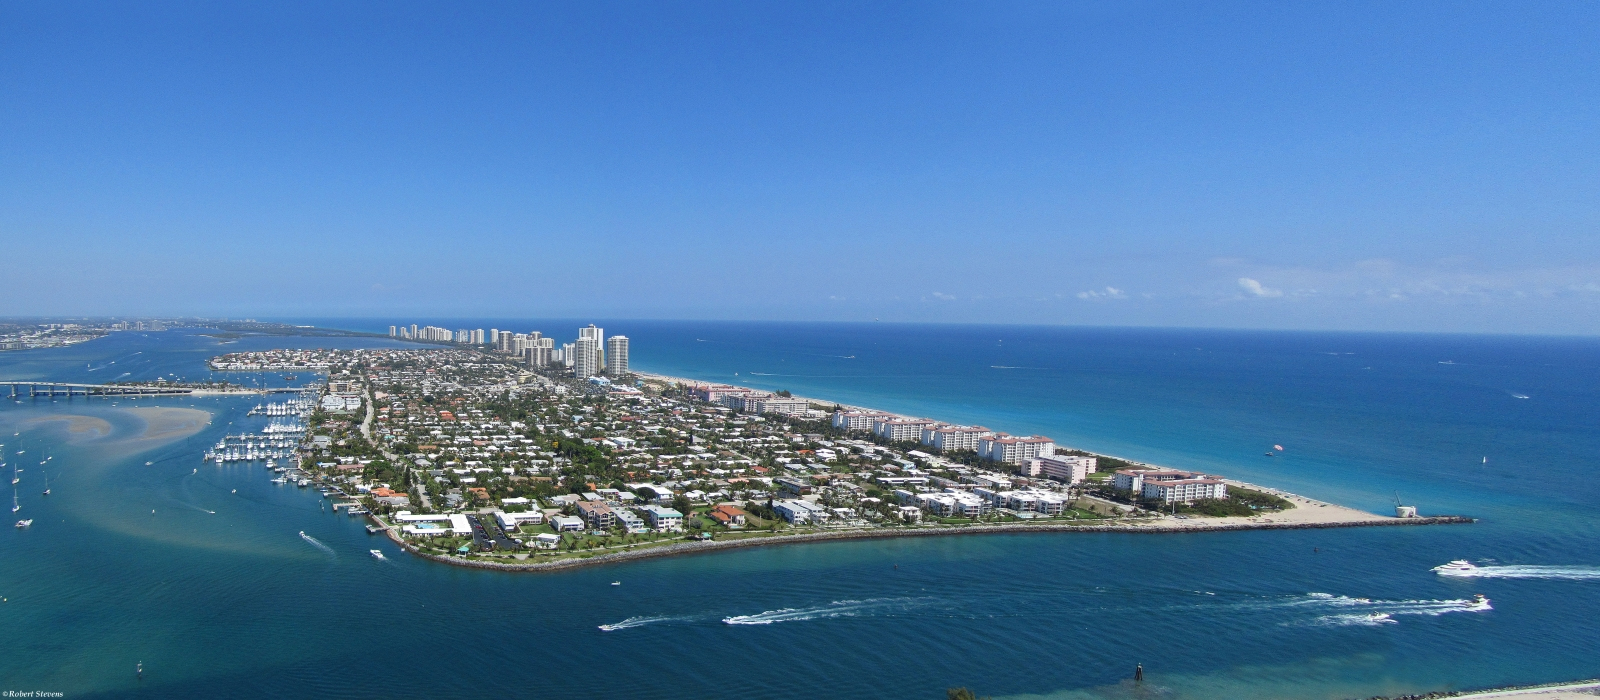 Singer Island Homes - Singer Island Florida Map